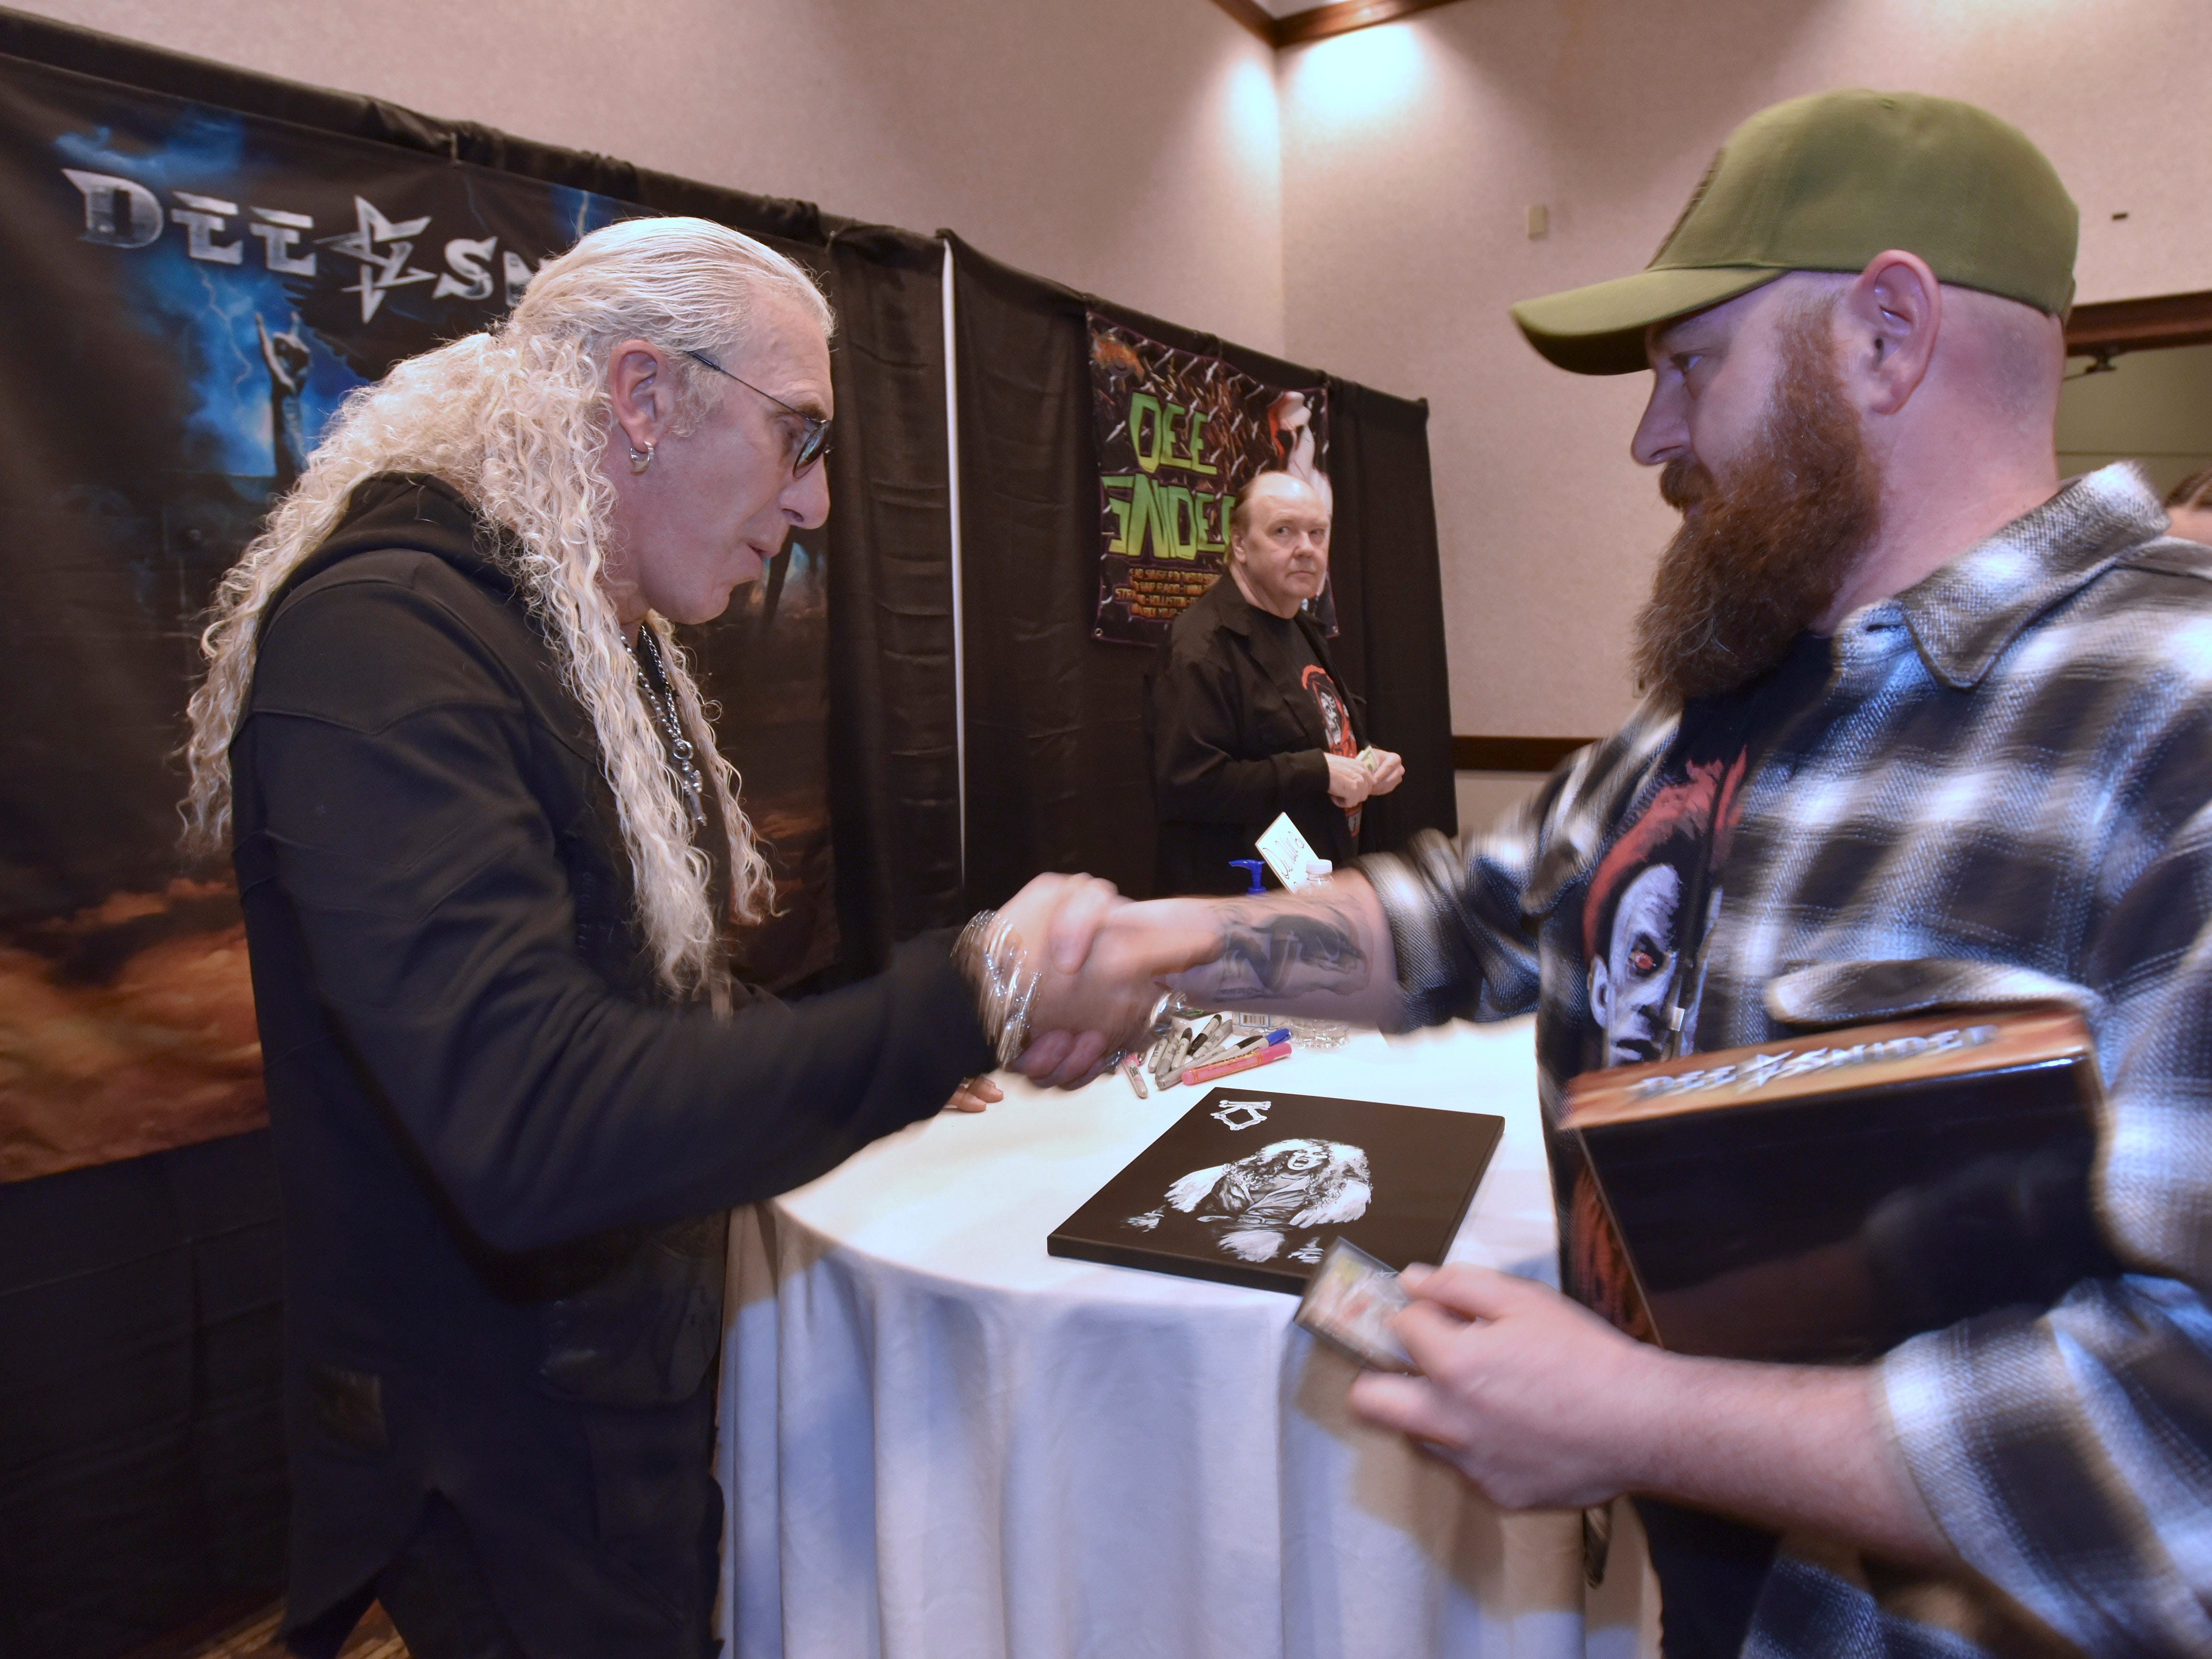 Twisted Sister frontman Dee Snider, left, shakes hands with fan Jason Zielke, right, 44, of Redford, before signing his autograph on a painting that Zielke made of Snider, Friday. Snider is promoting his new solo album, 'For the Love of Metal.'